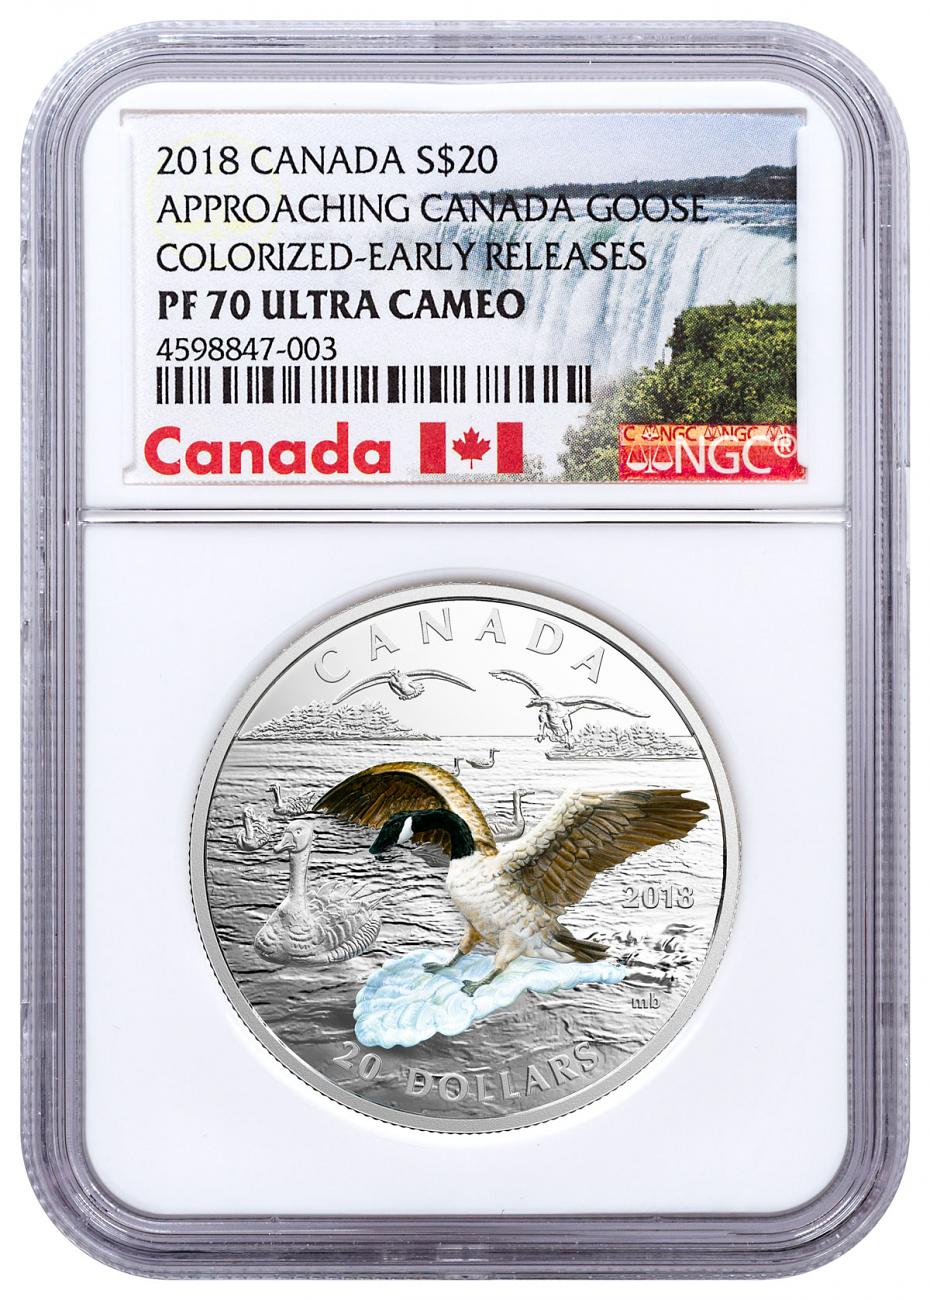 2018 Canada Three-Dimensional Series - Approaching Canadian Goose 1 oz Silver 3D Colorized Proof $20 Coin NGC PF70 UC ER Exclusive Canada Label